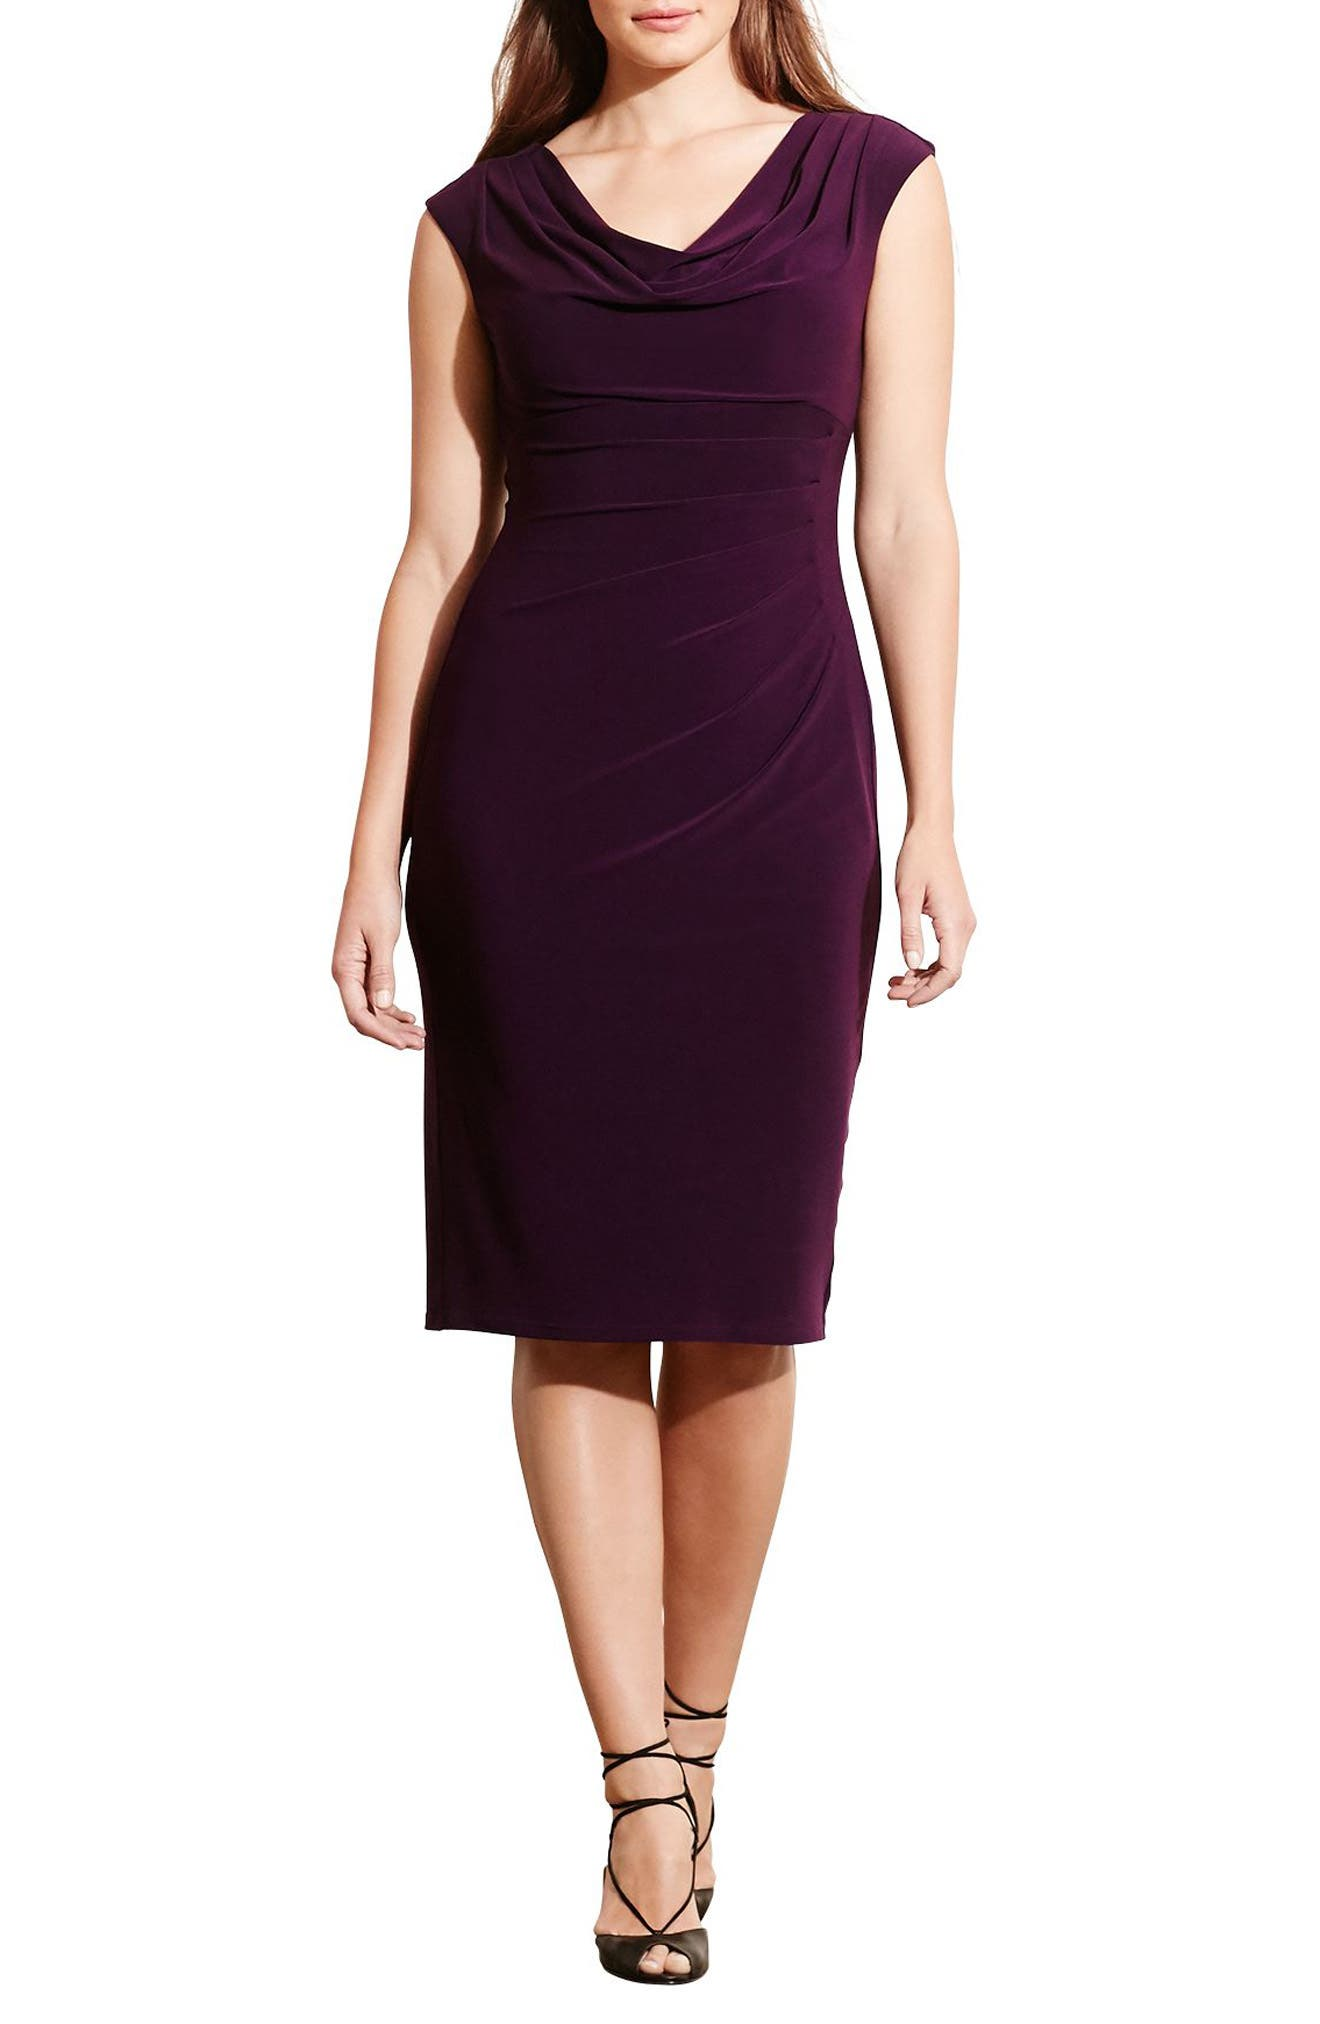 Lauren Ralph Lauren Cowl Neck Jersey Sheath Dress (Plus Size)